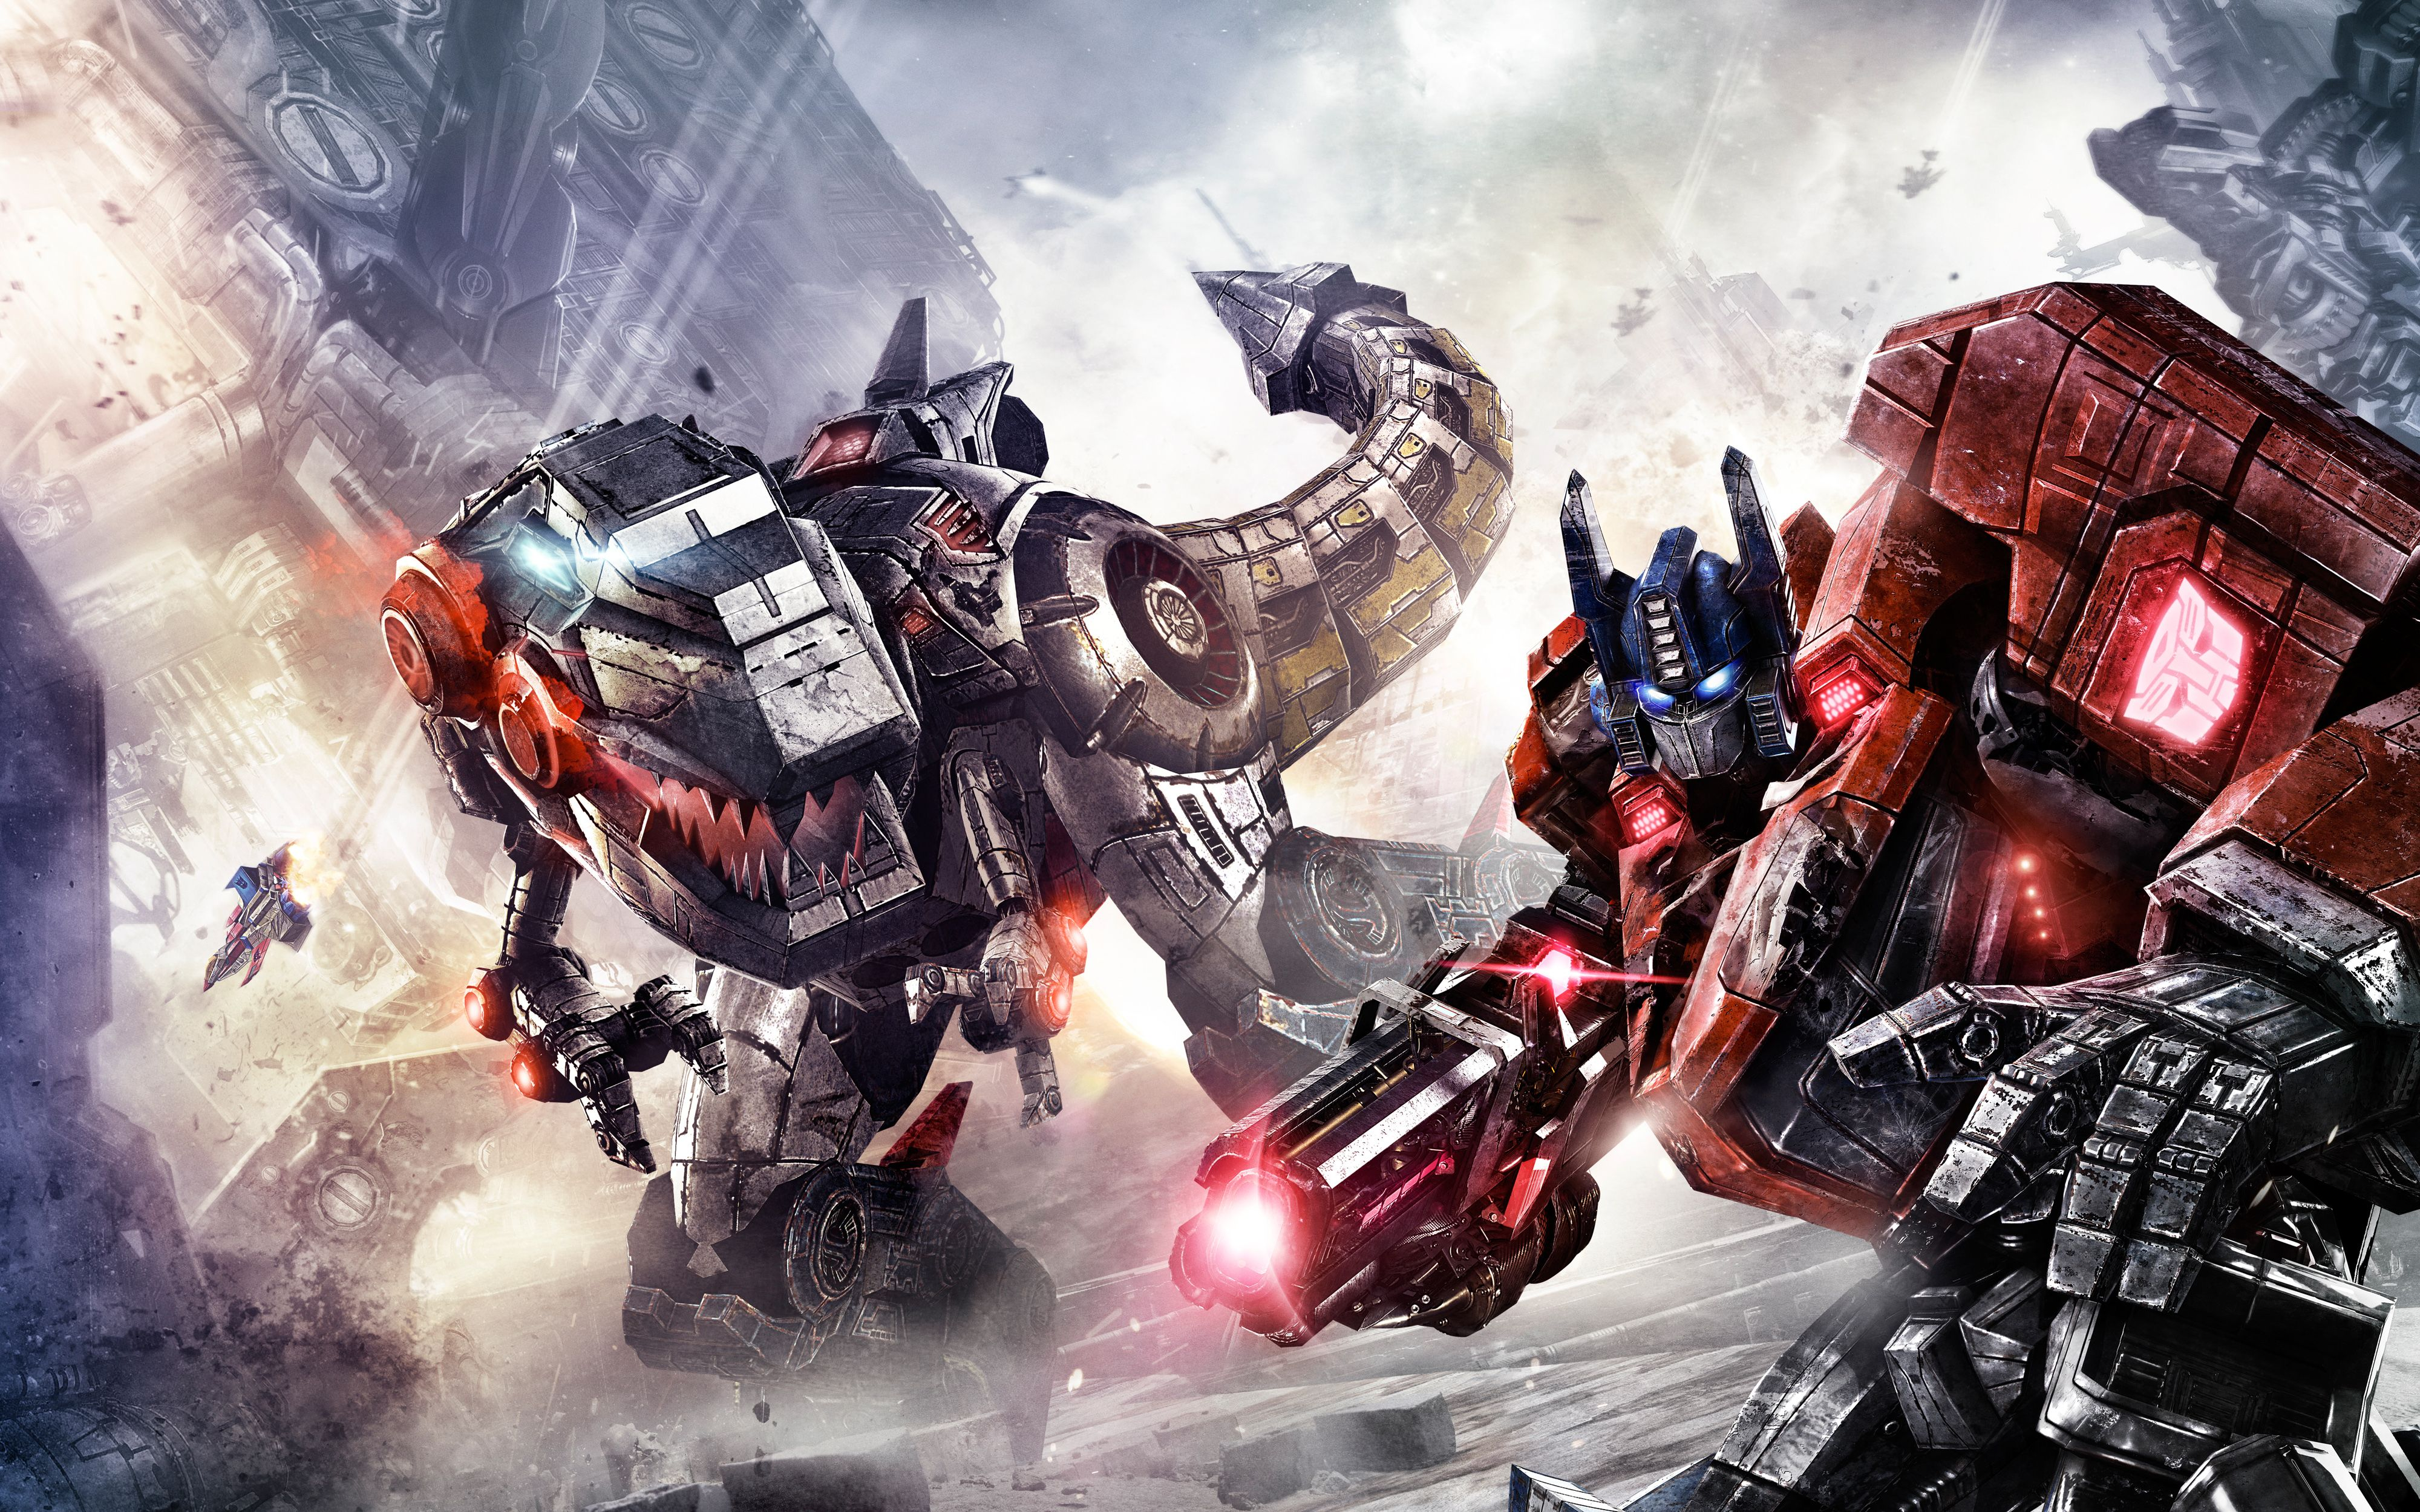 Transformers Fall Of Cybertron Game Hd Wallpaper Prime And Dinobot Transformers Transformers Art Graphic Wallpaper